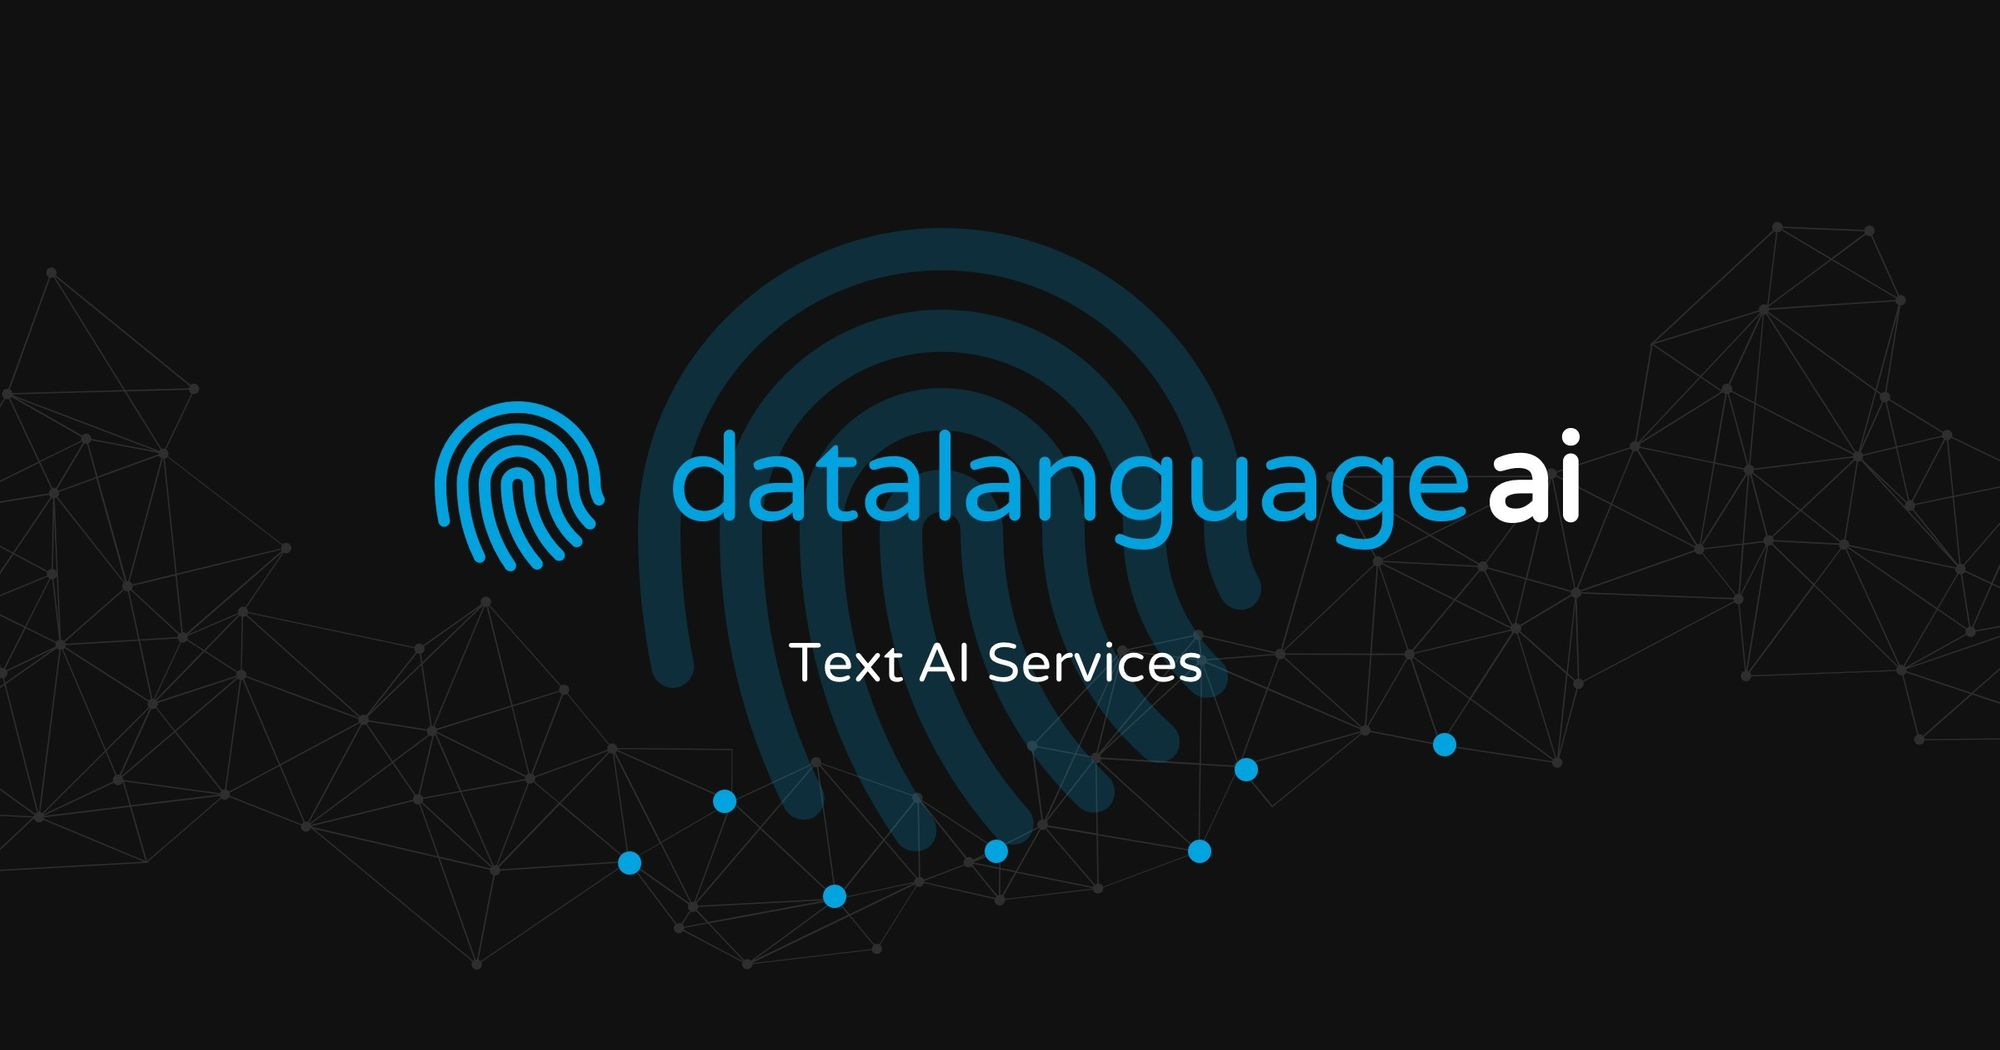 Launching Text AI Services